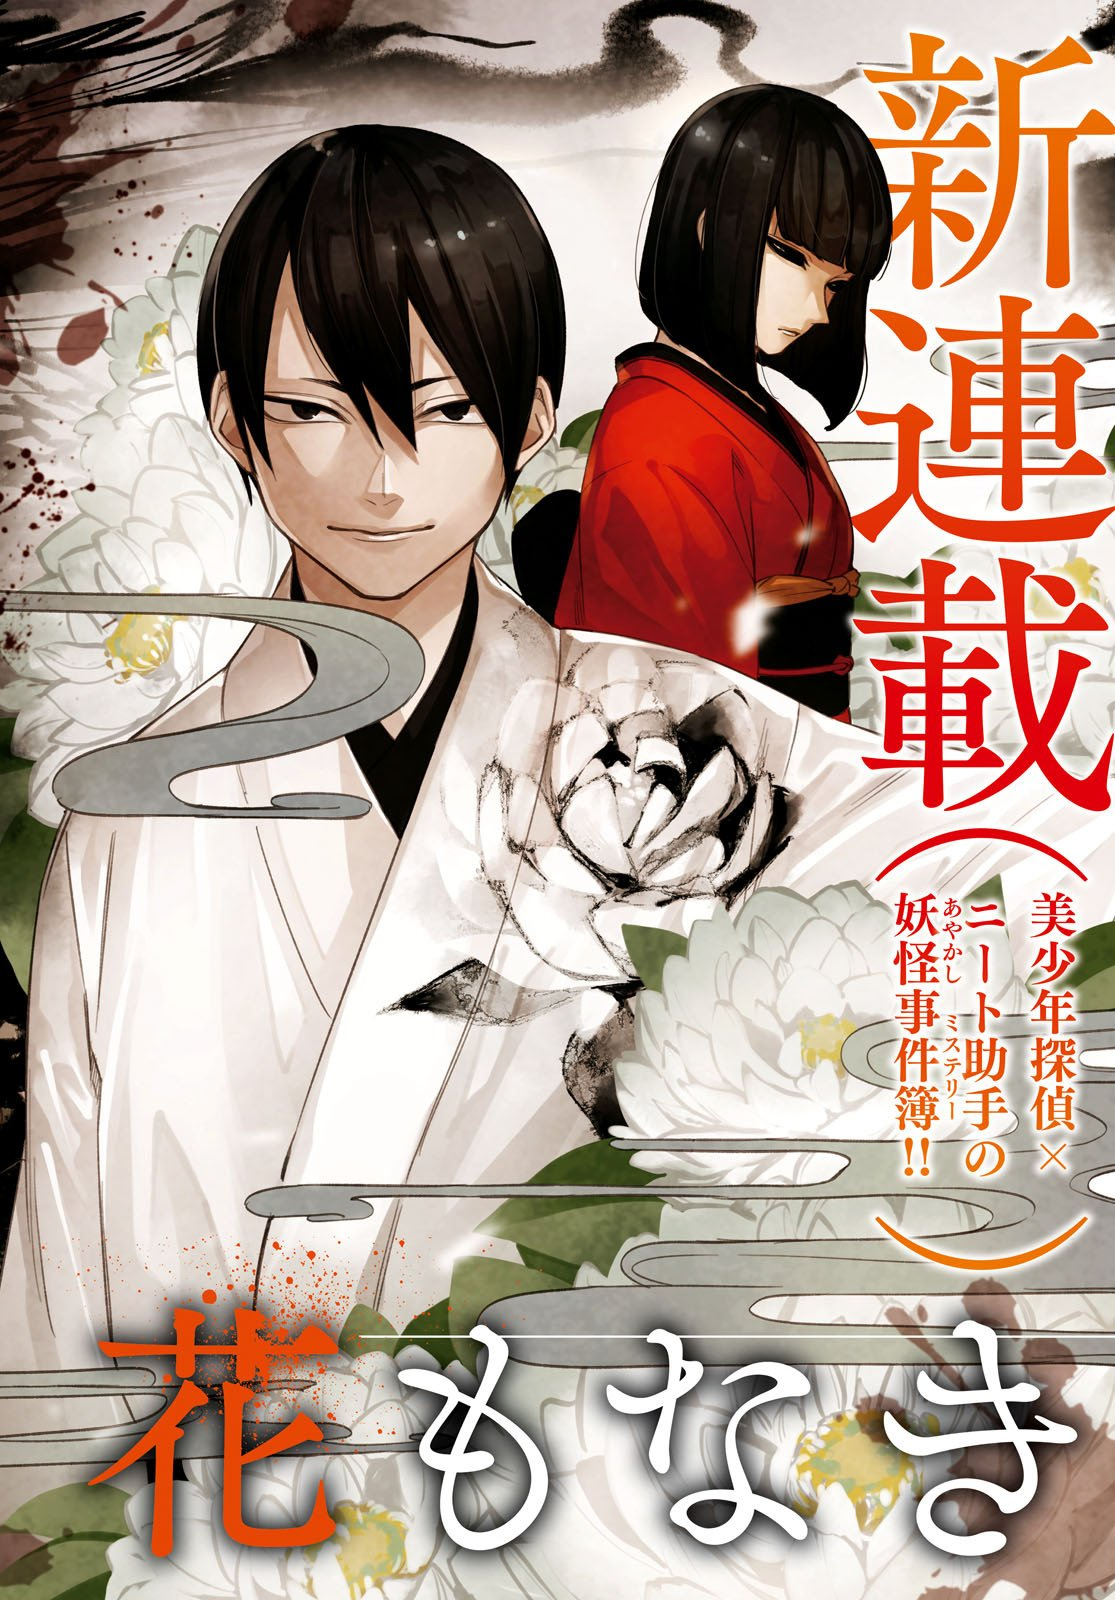 Read Manga Hell Without Flowers